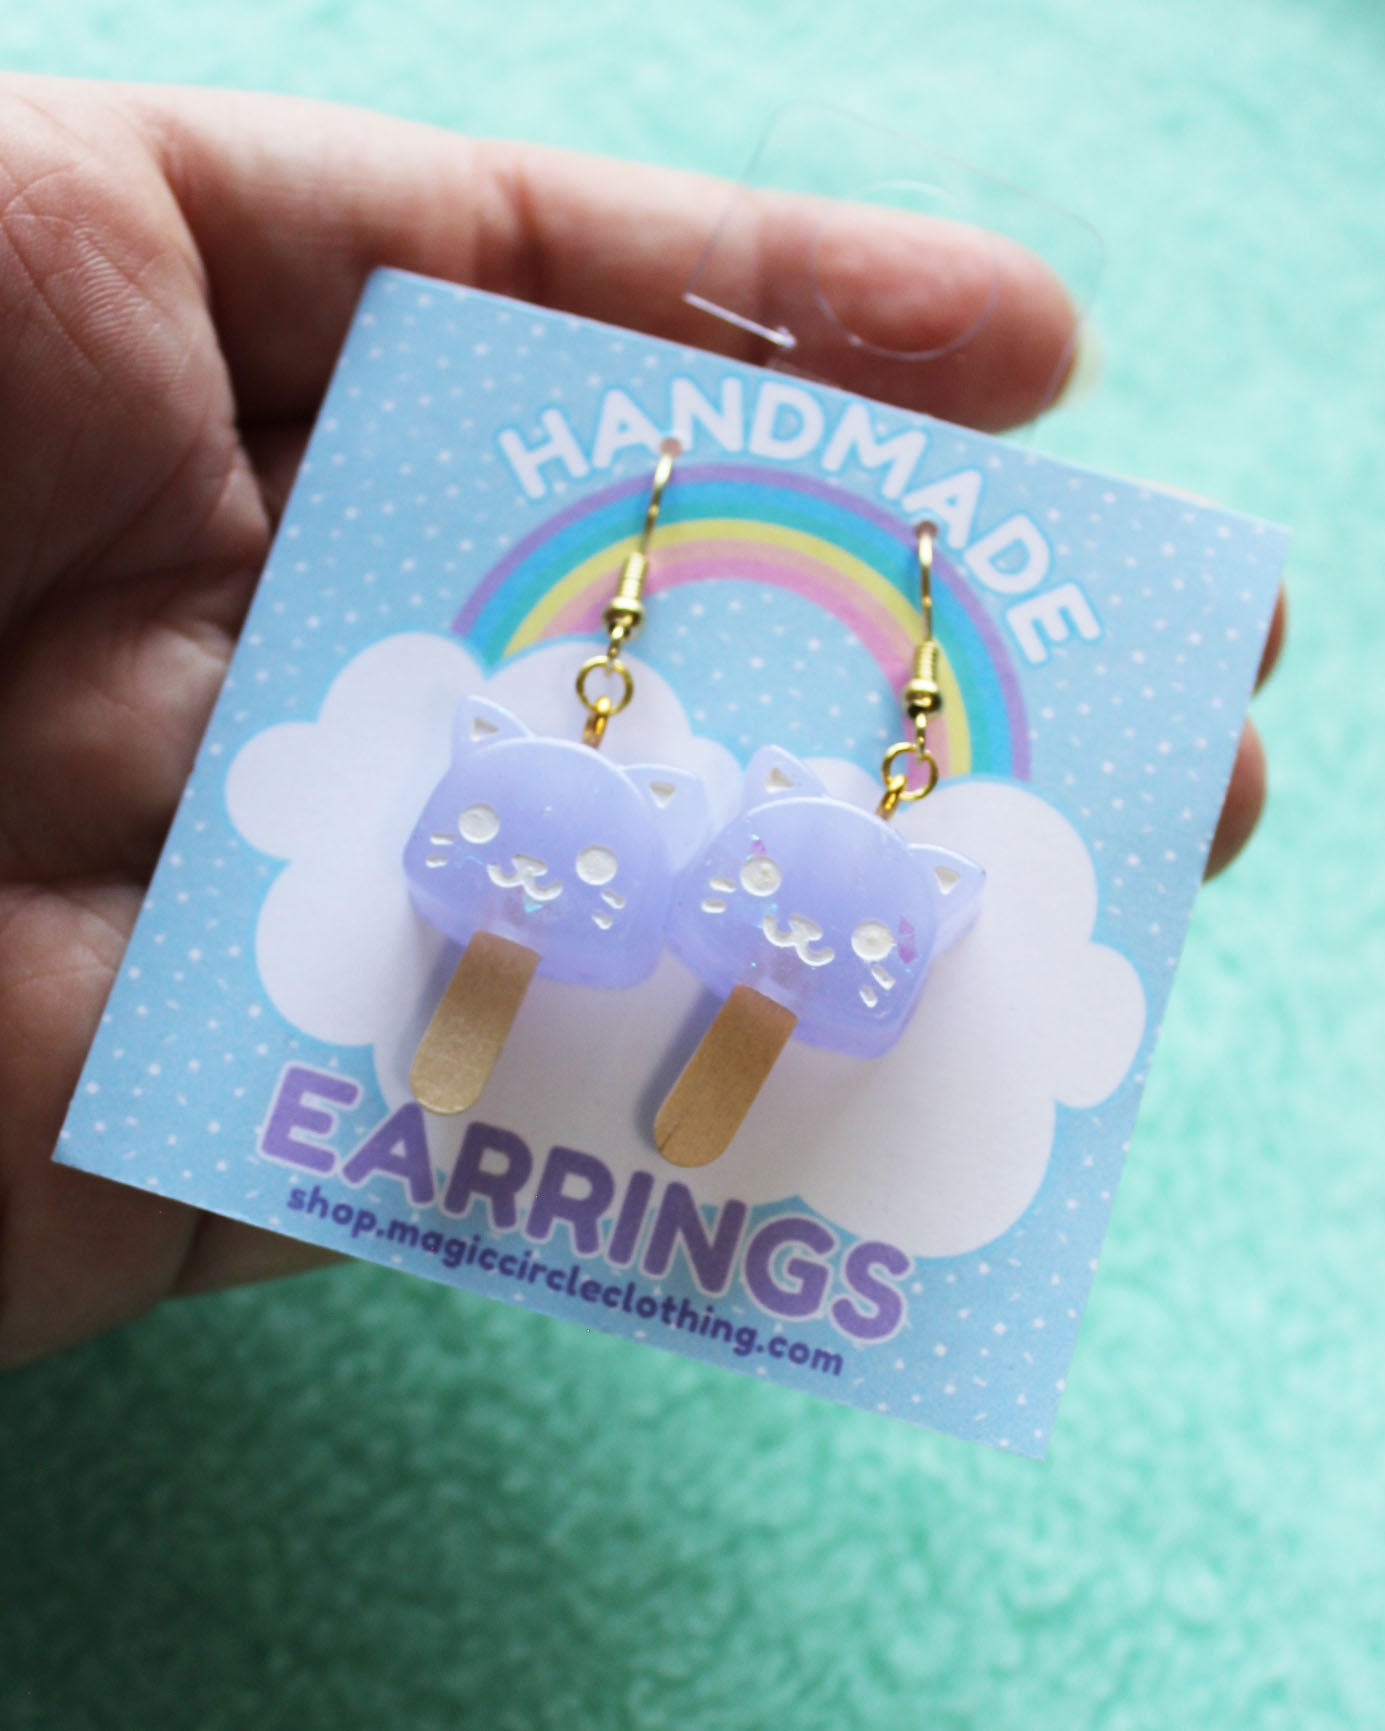 Catsicle Earrings - Kitty Popsicle Dangles